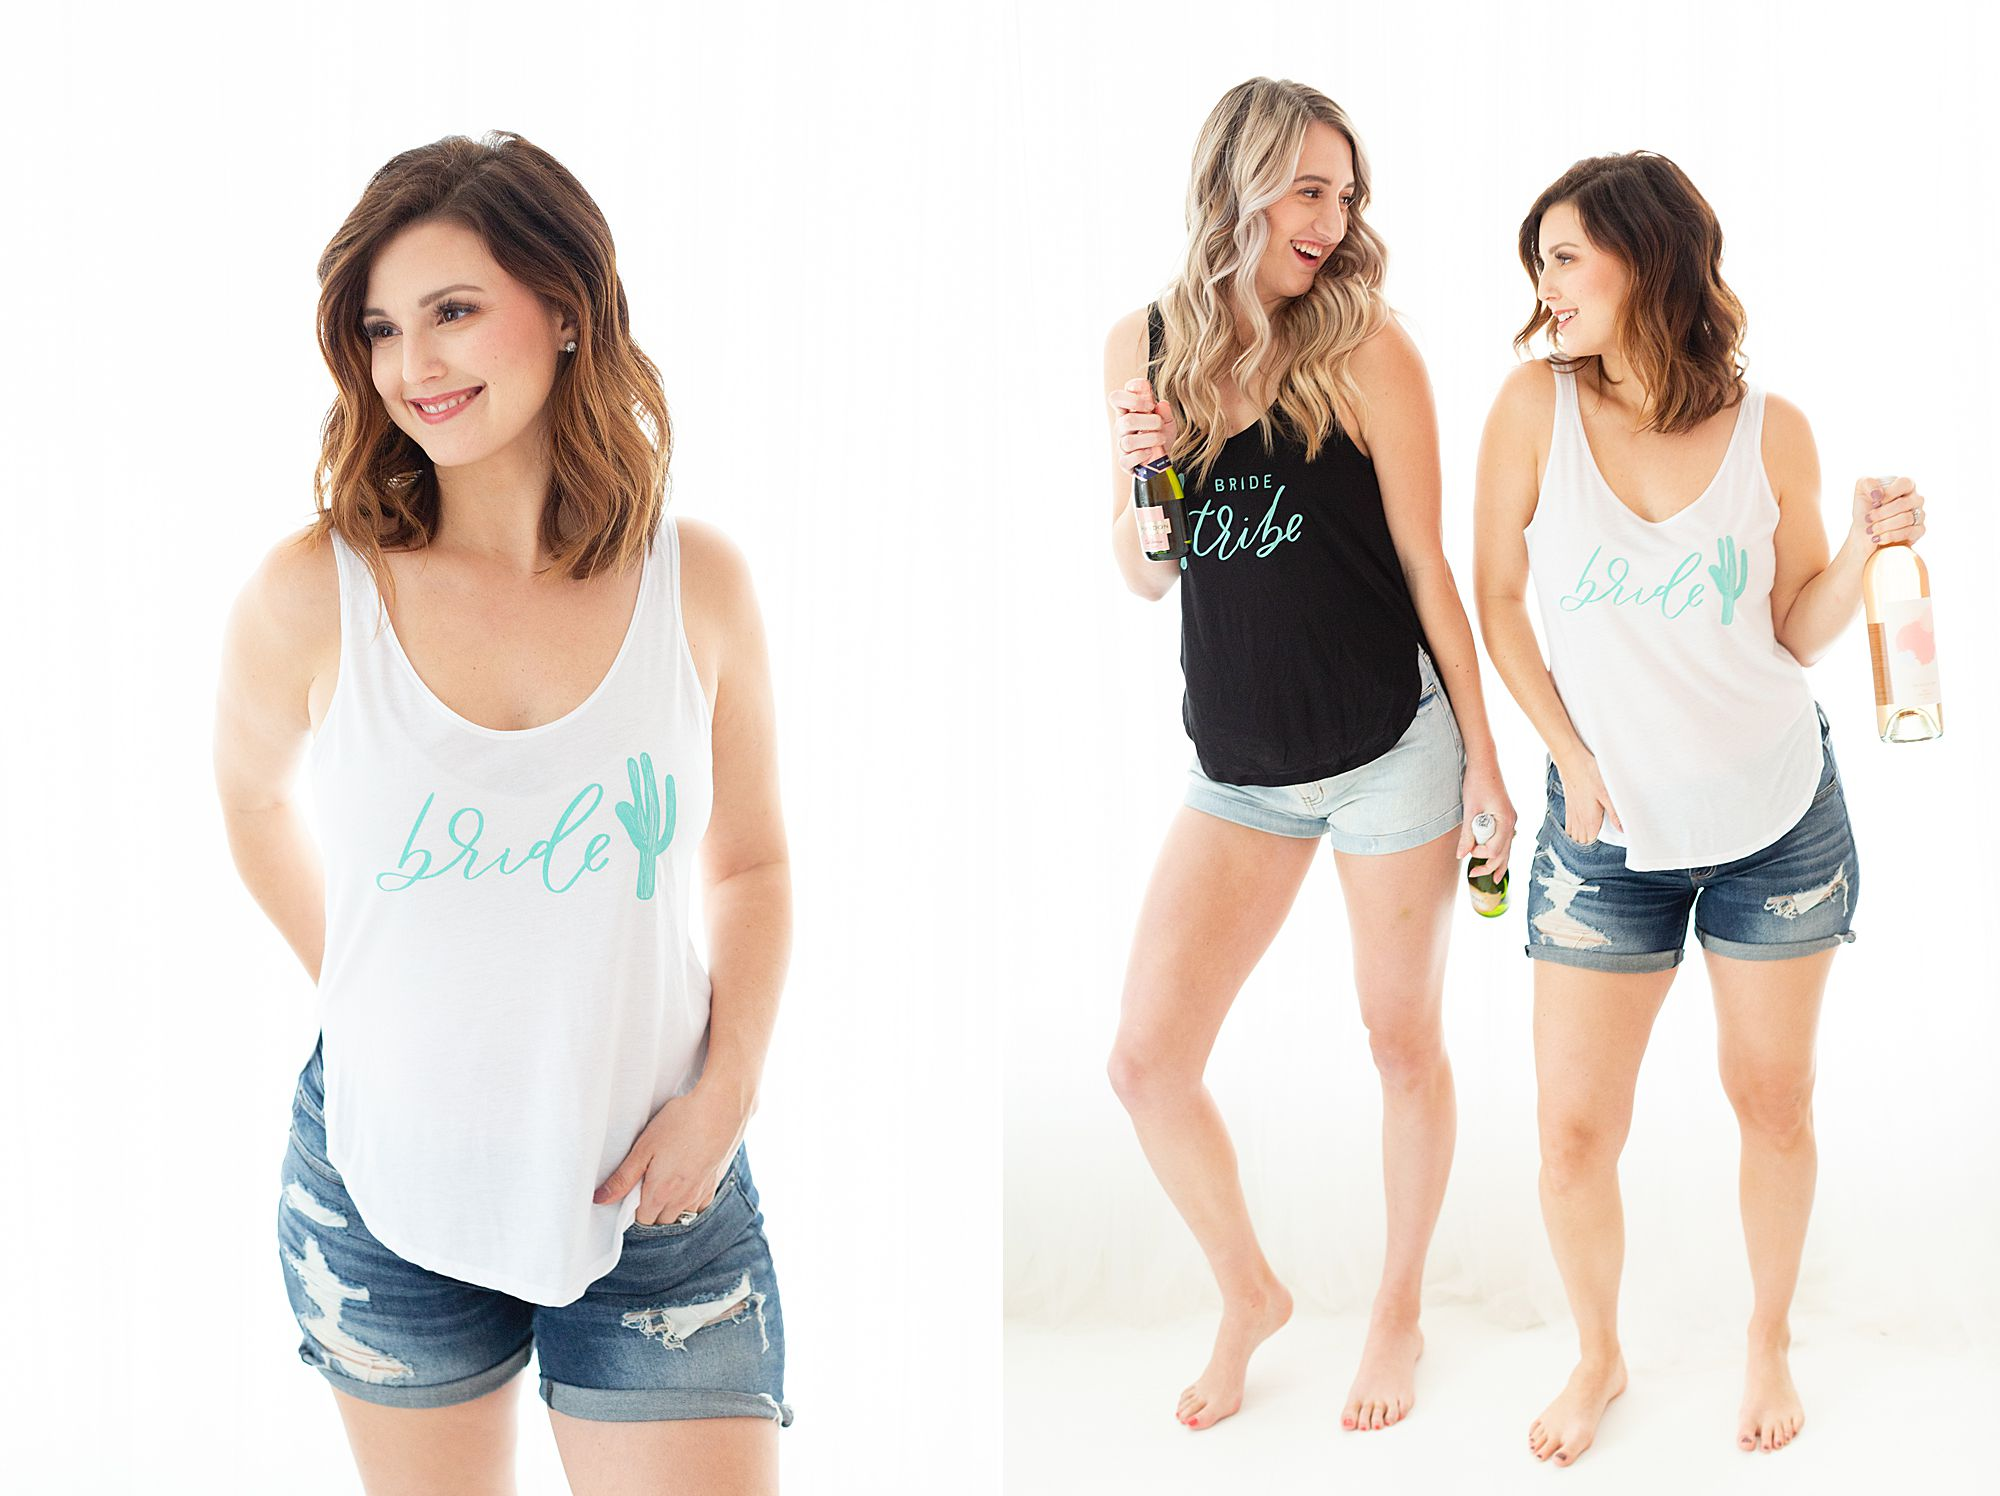 The Baum Shop - Launch Celebration - Ashley Baumgartner Etsy Shop - Bride Tank Tops and Wifey Mug - Bridal Etsy Shop_0030.jpg